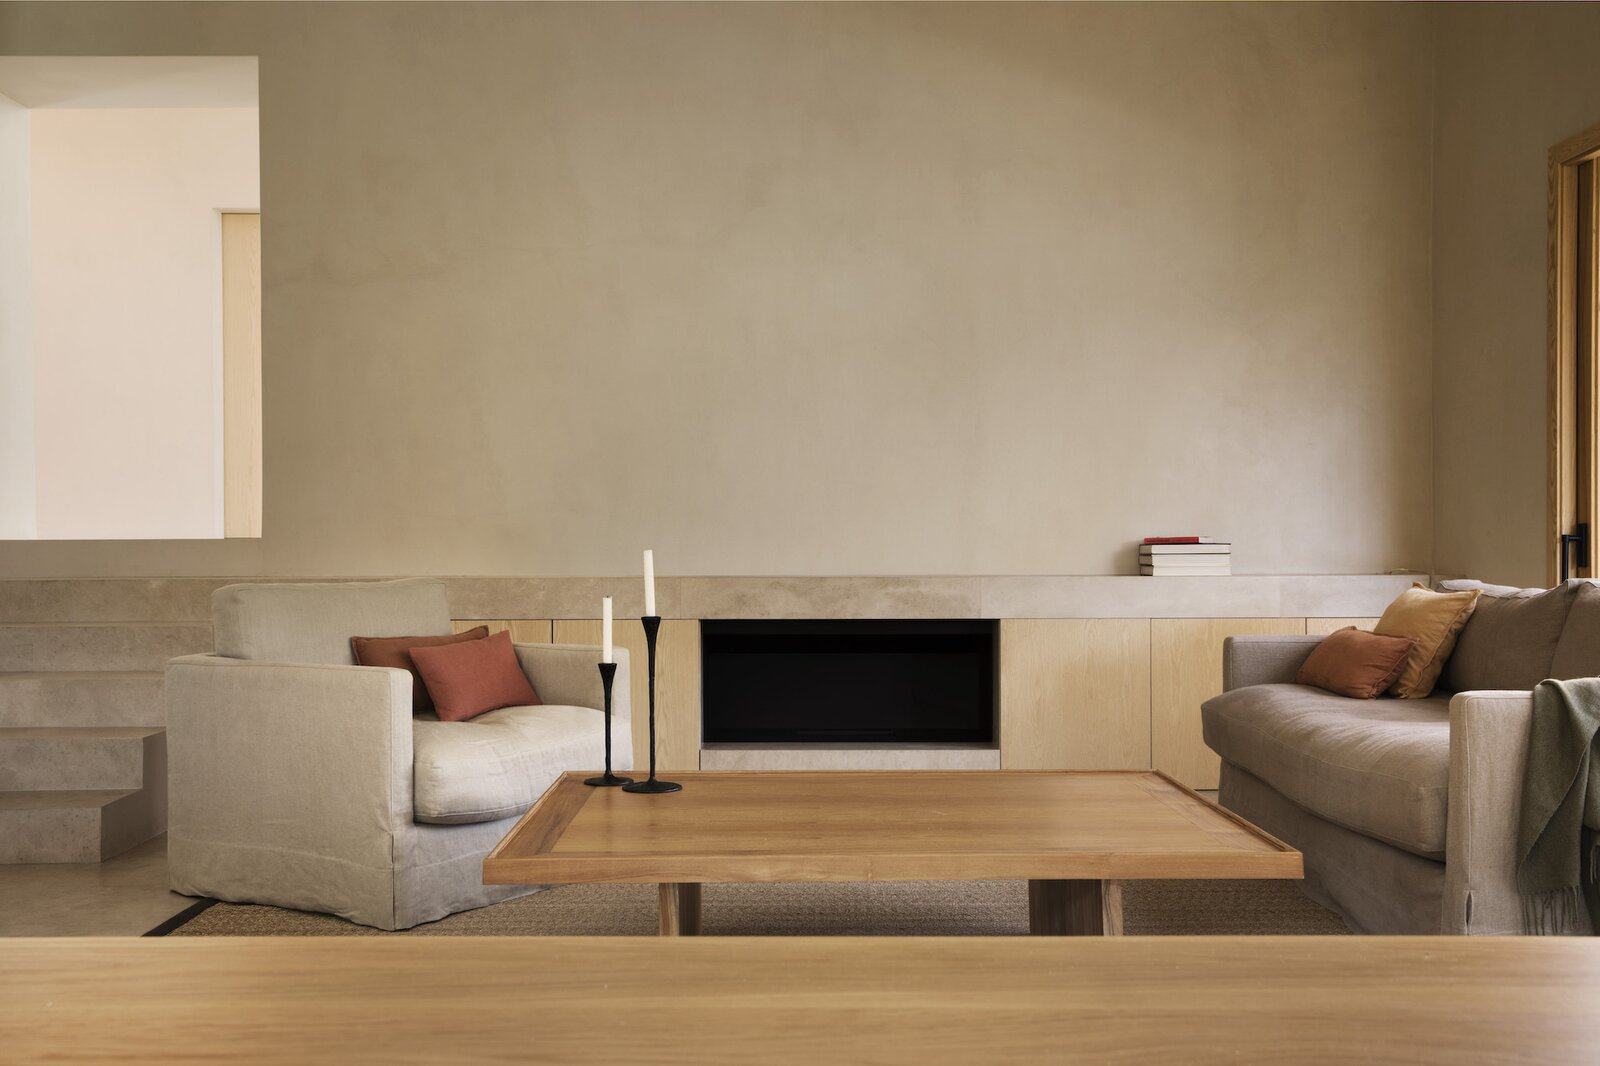 Living, Coffee Tables, Chair, Sofa, Rug, and Standard Layout  Dwell's Favorite Living Photos from A Dreamy, Minimalist Retreat in Spain Opens to Its Lush Surroundings